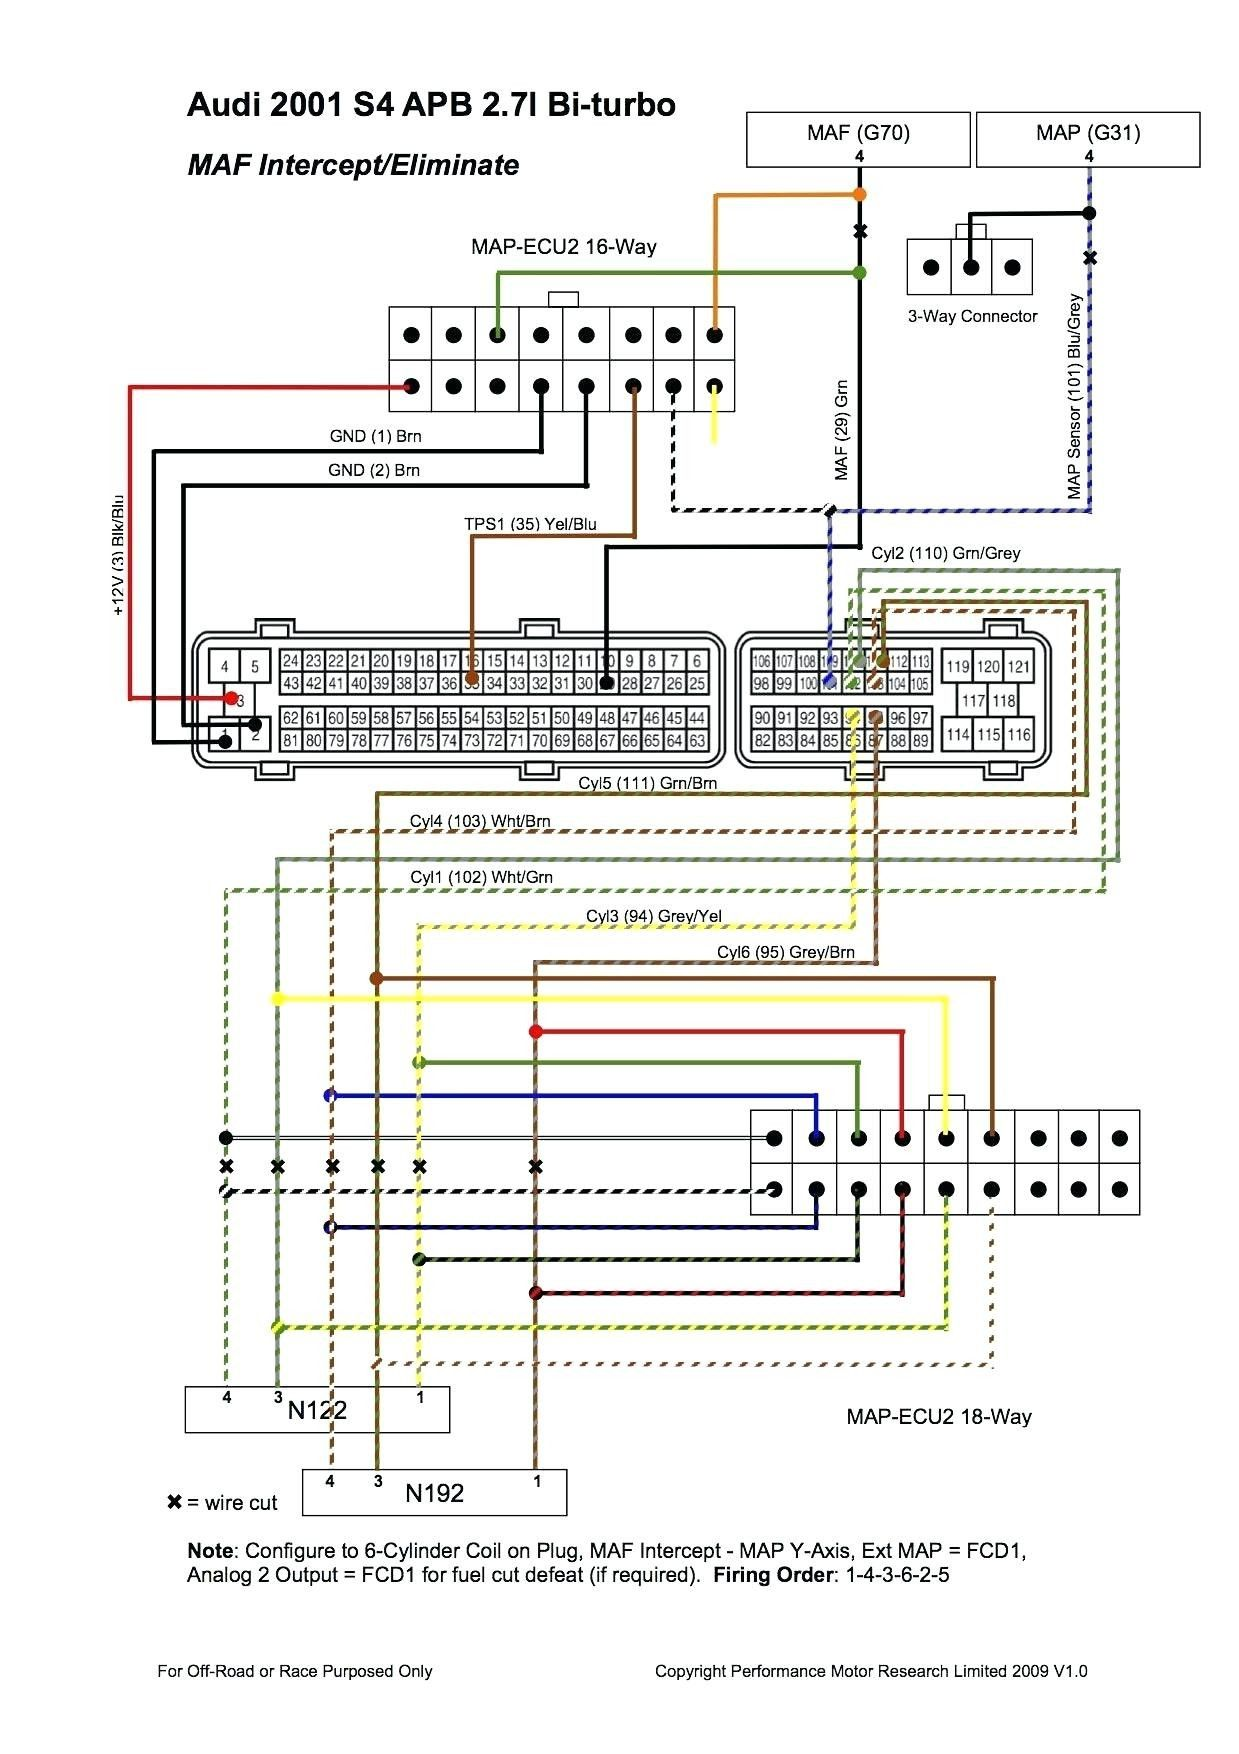 audi s6 s4 a6 c4 92 98 wiring color codes locations wiring diagram audi rs2 wiring diagram [ 1239 x 1754 Pixel ]